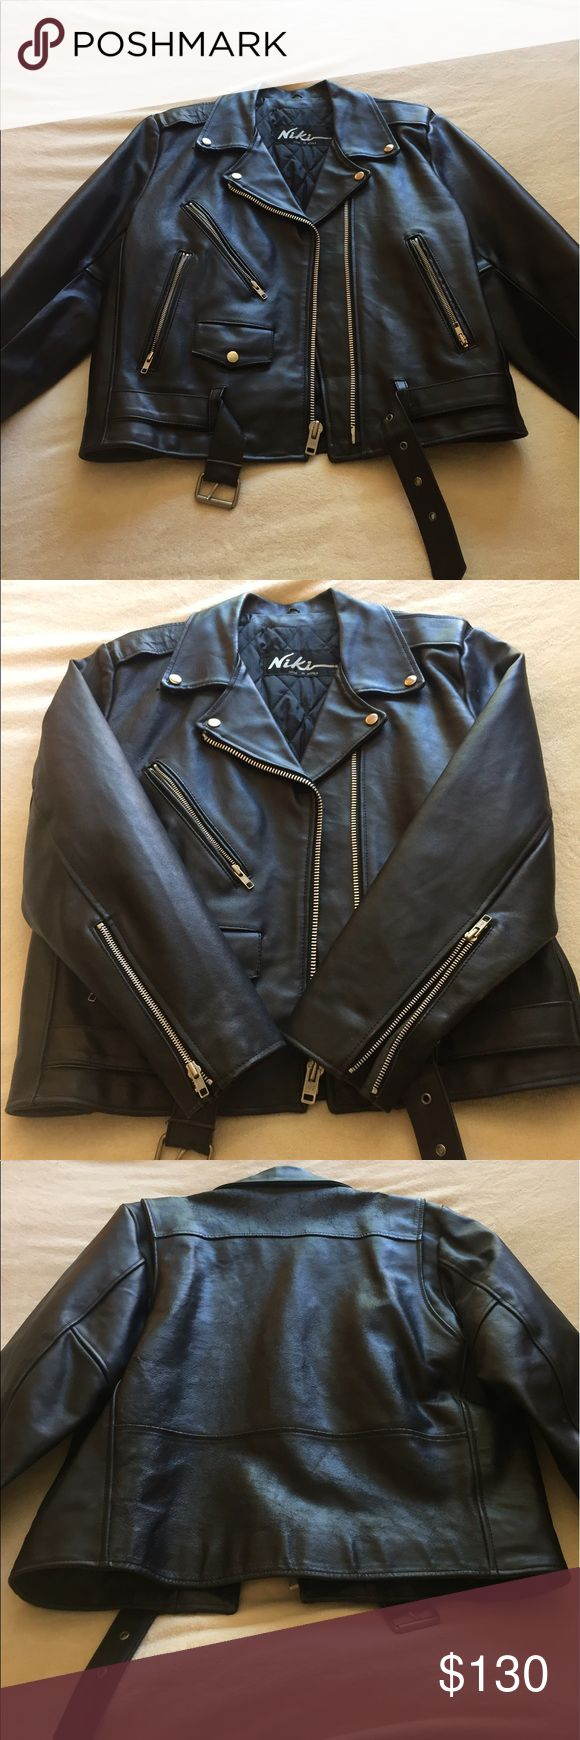 Vintage NIKI Leather Motorcycle Jacket Vintage leather NIKI men's motorcycle jacket in size Large I believe. Sorry tags don't specify size. Can take measurements upon request. Some signs of wear at the cuffs as well as the back collar area as shown in the photos. Small circular hole by lapel as well. All in all it is still a fantastic Jacket and collectors dream. Asking $130 or best offer. Niki Jackets & Coats Performance Jackets